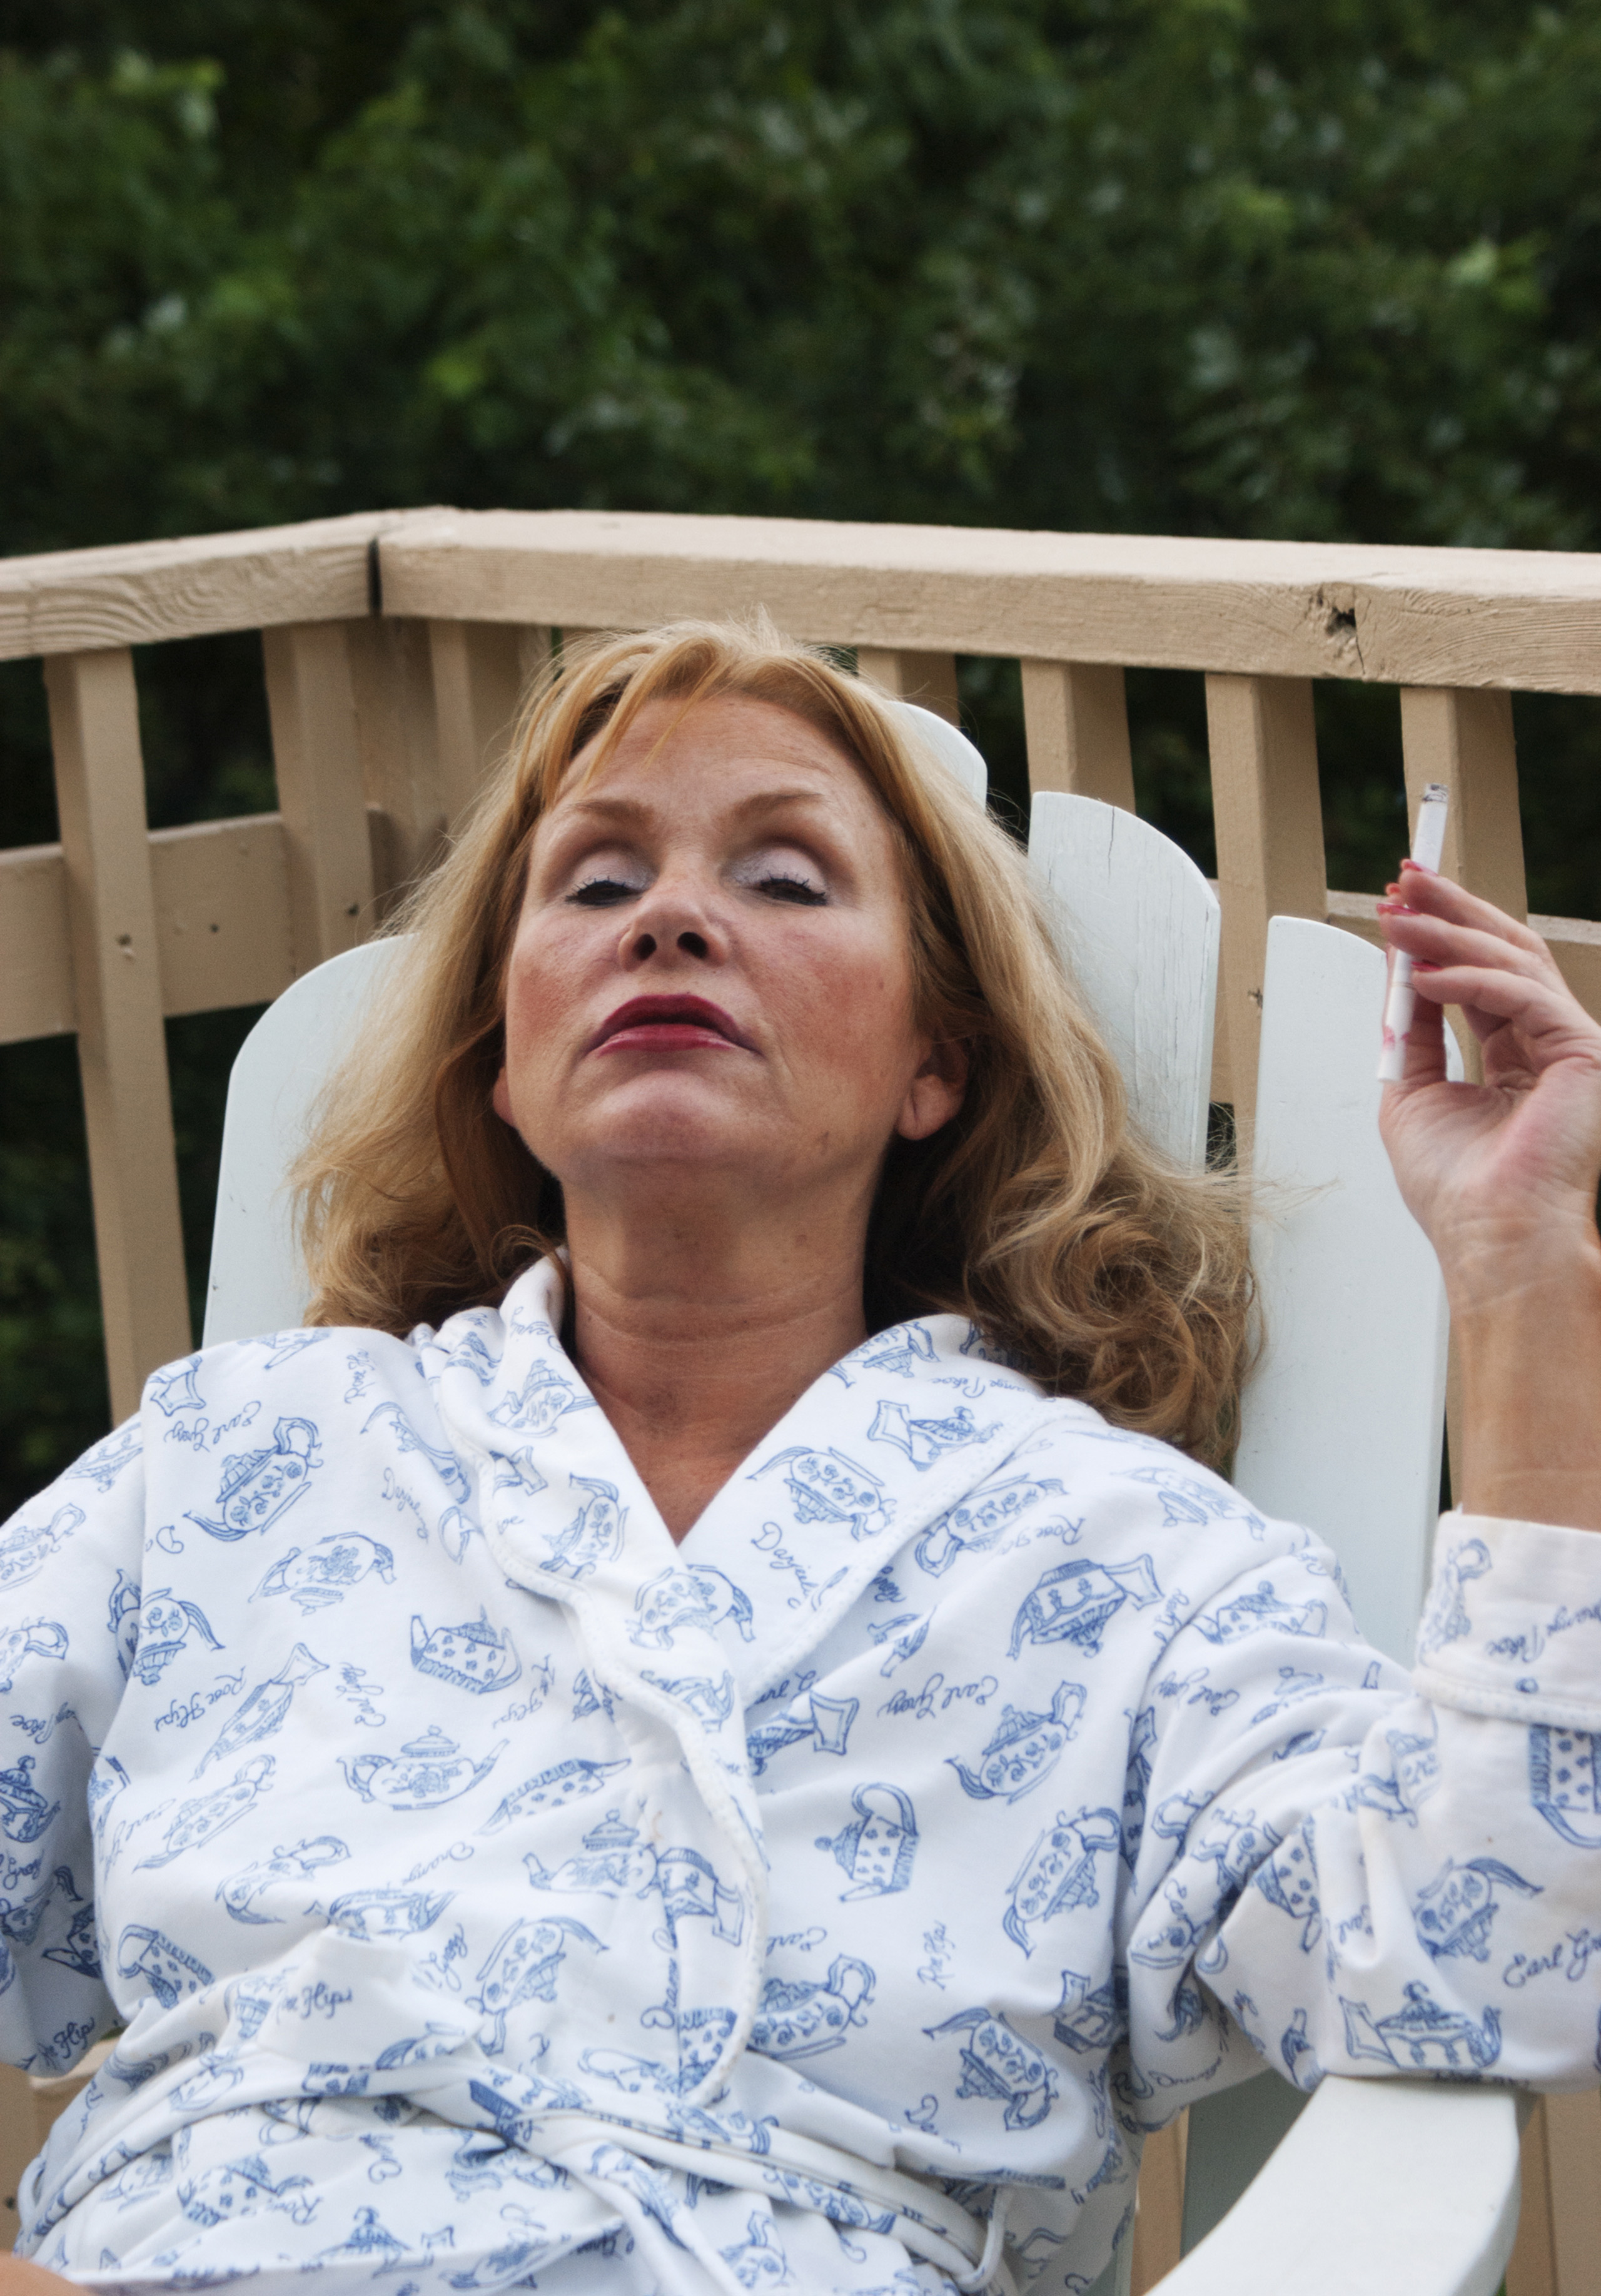 Mom Smoking After Work, 2010. from the series You Have Nothing to Worry About